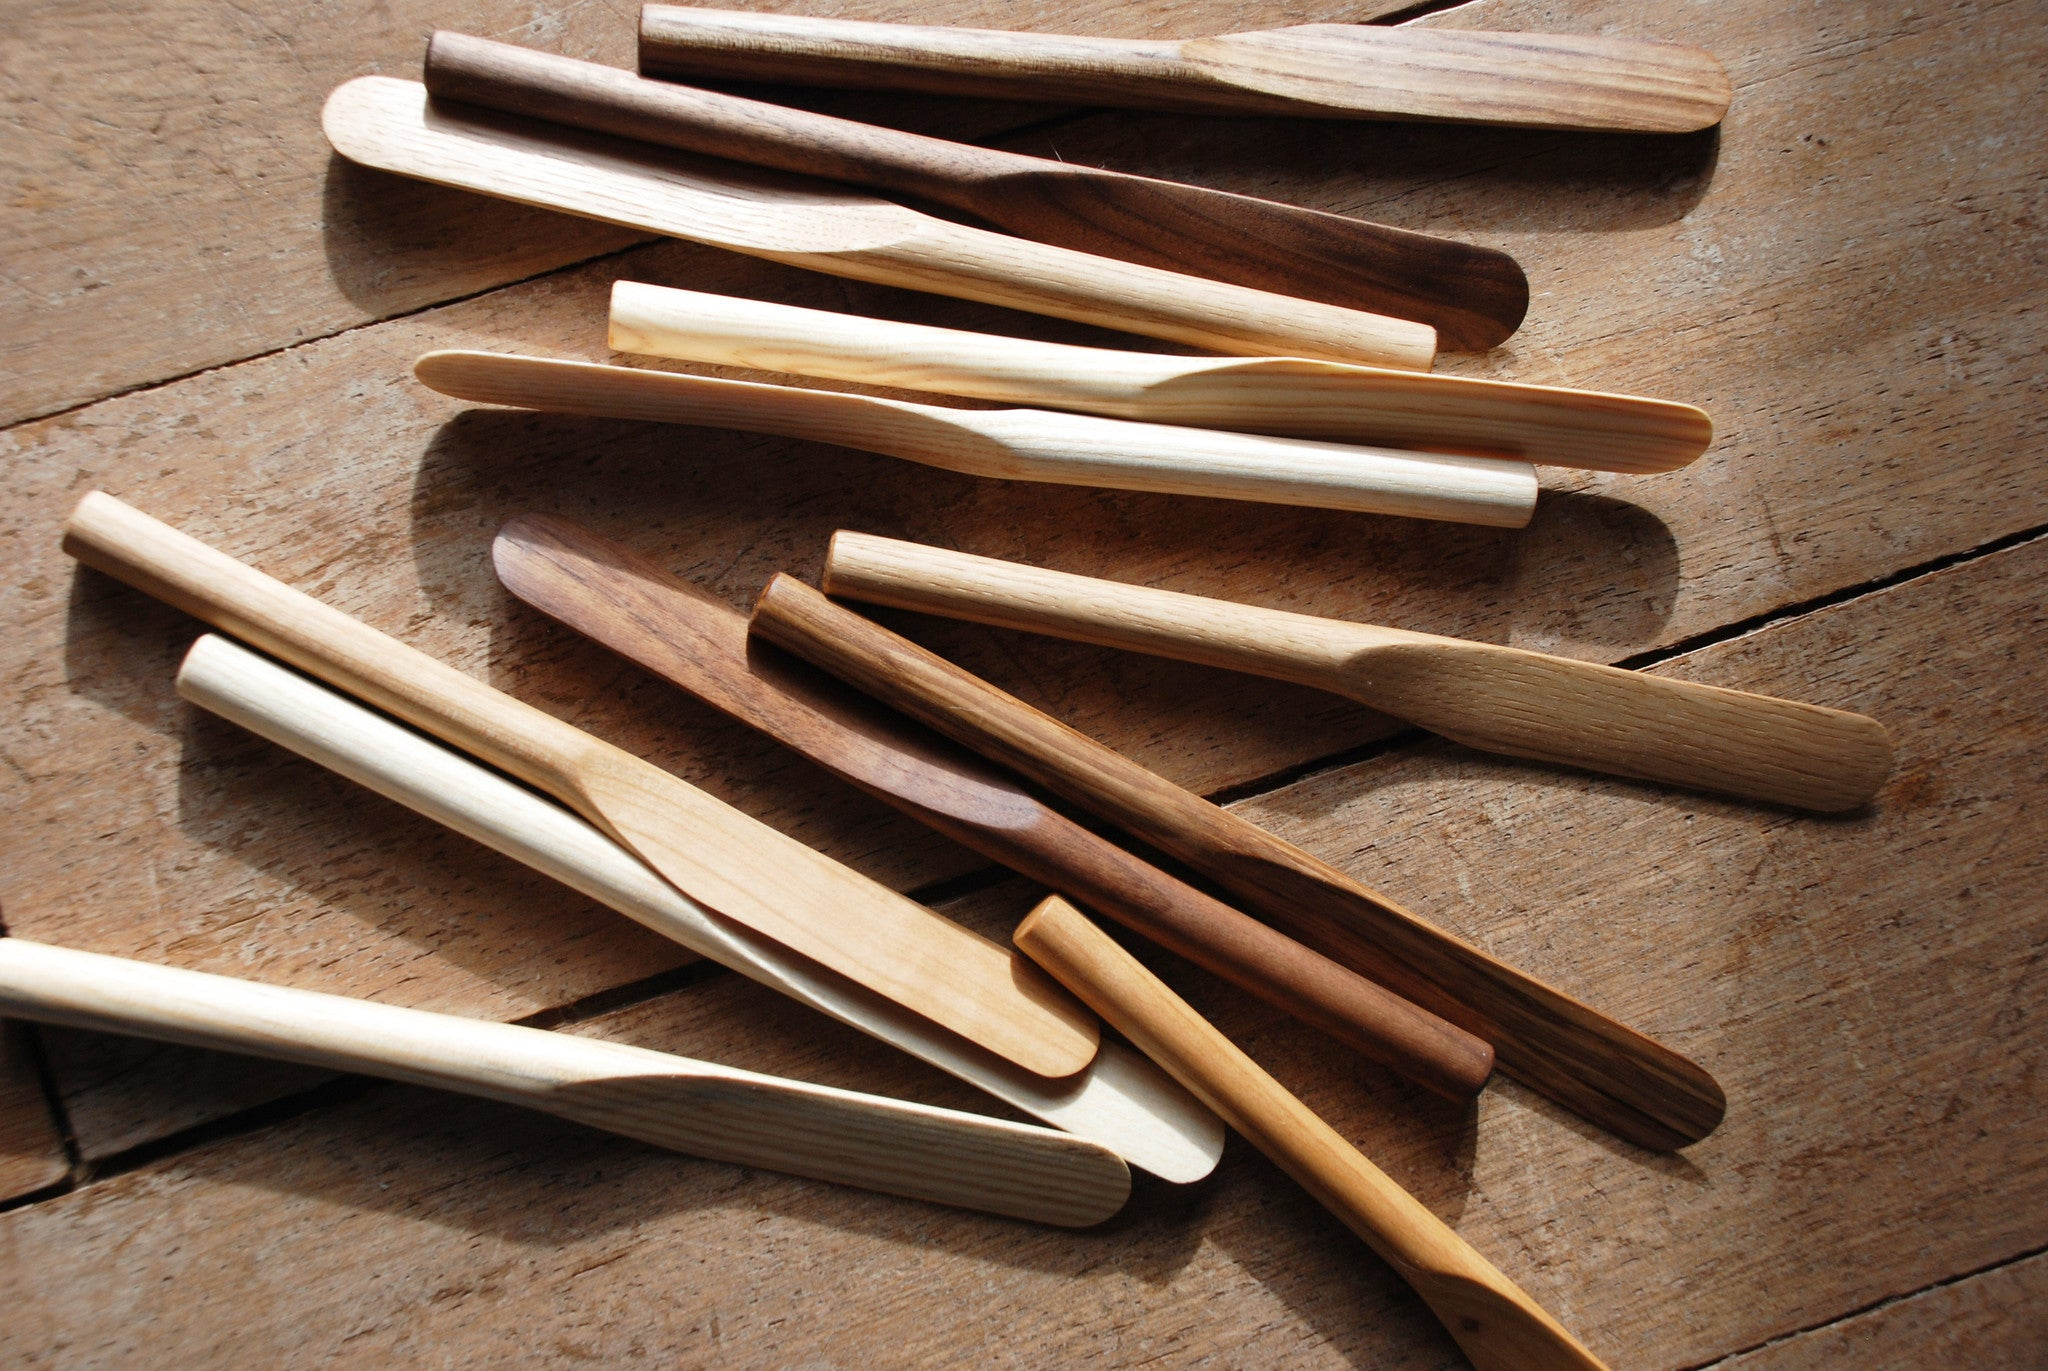 Wooden Butter Knives